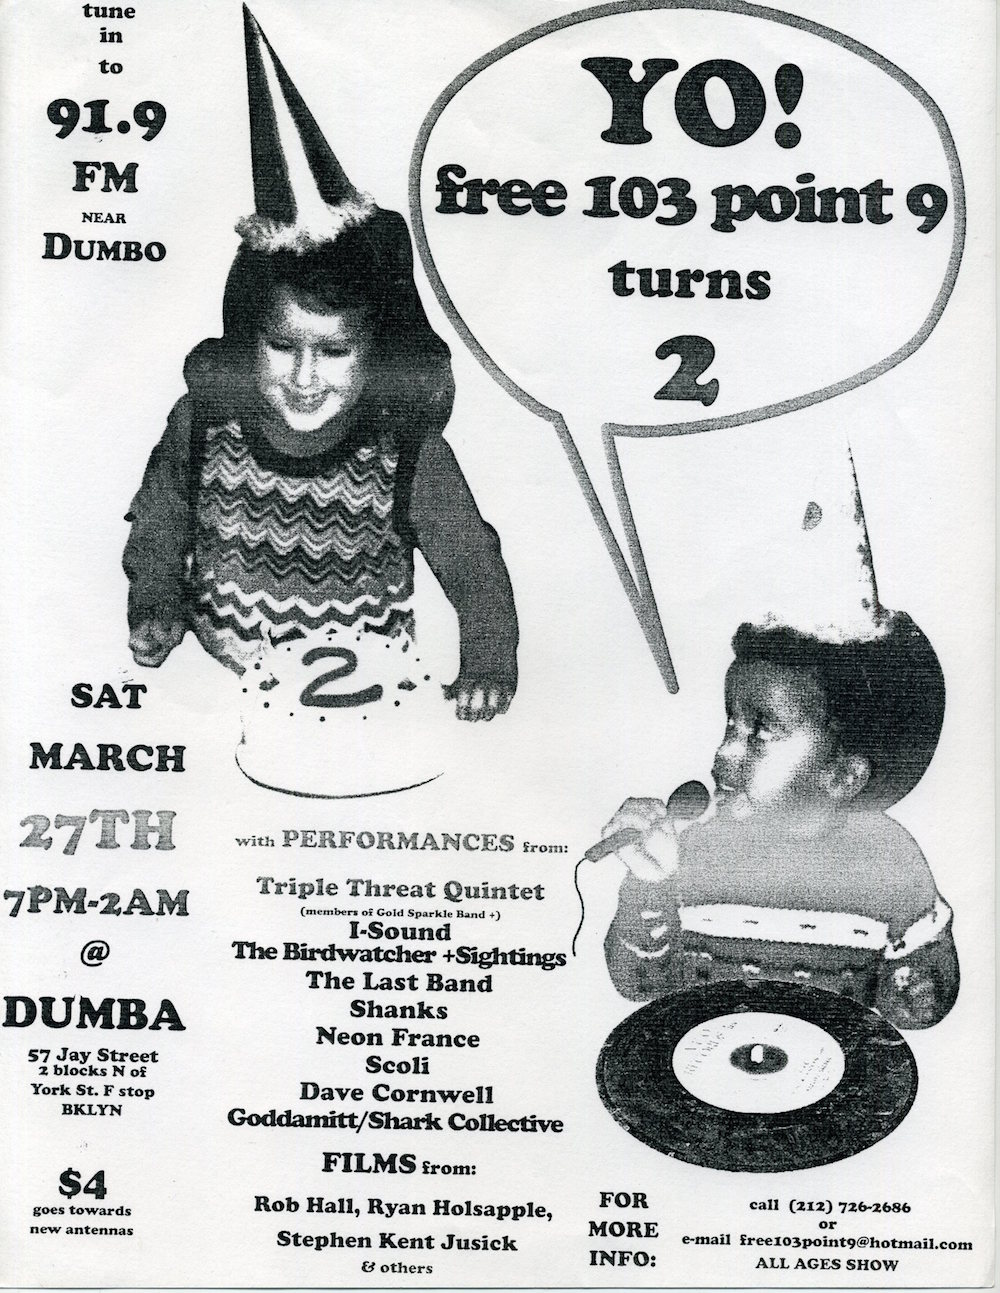 free103point9 Second Anniversary Party Poster